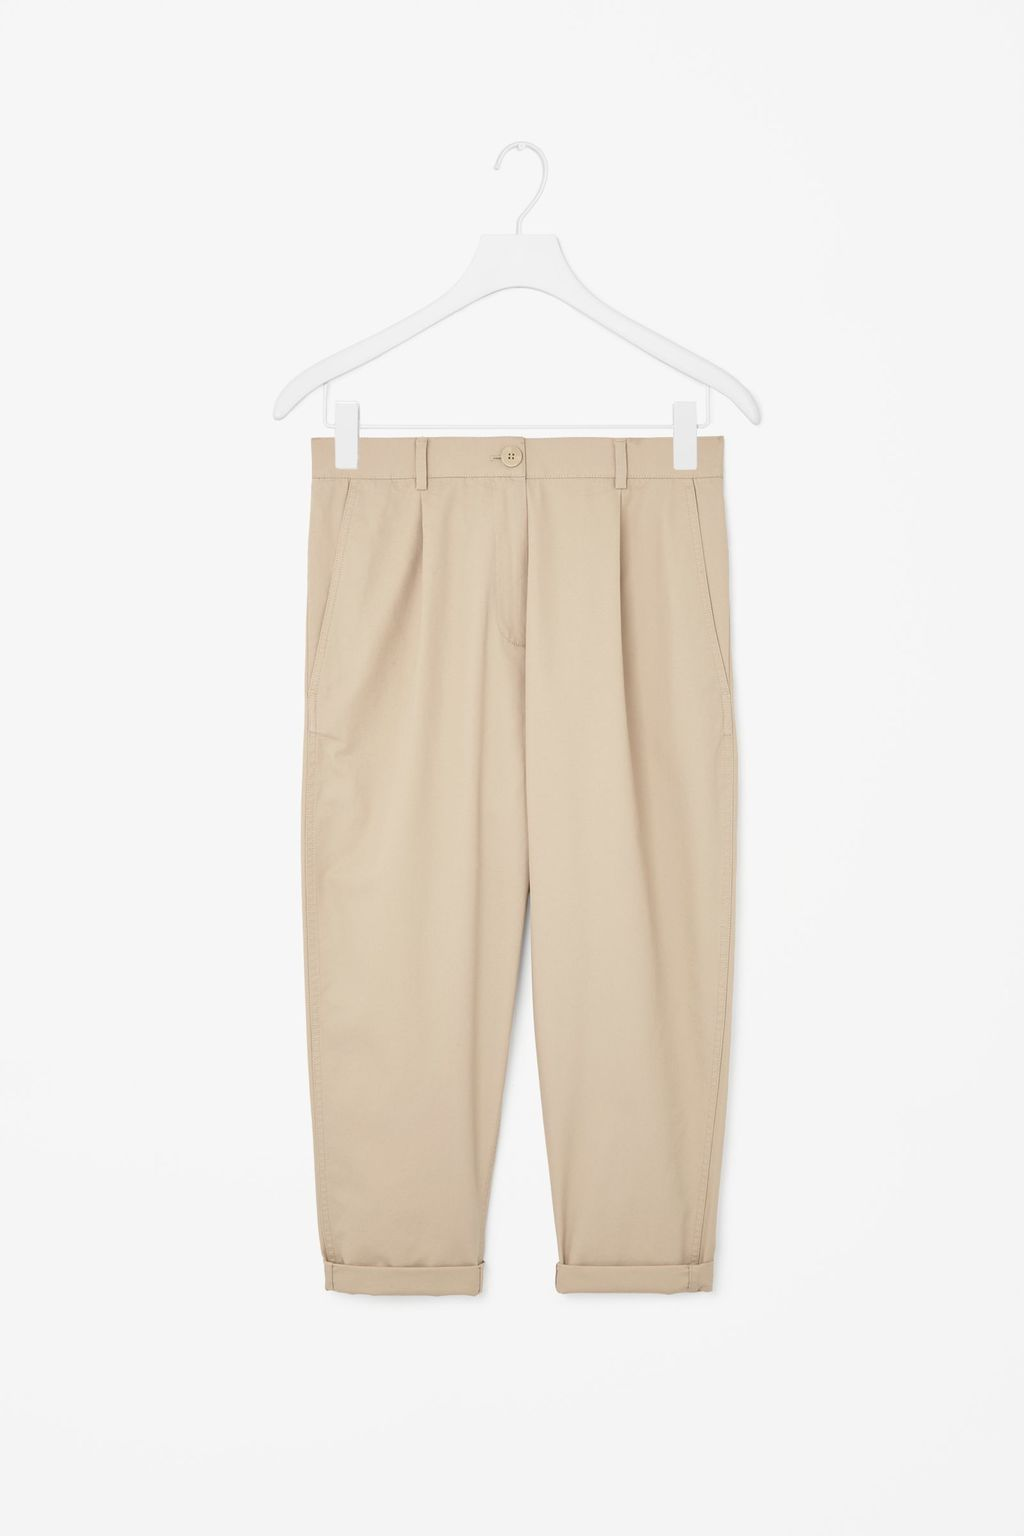 Loose Fit Cotton Chinos - pattern: plain; waist: mid/regular rise; predominant colour: nude; occasions: casual, creative work; length: ankle length; style: chino; fibres: cotton - 100%; texture group: cotton feel fabrics; fit: tapered; pattern type: fabric; season: s/s 2015; wardrobe: basic